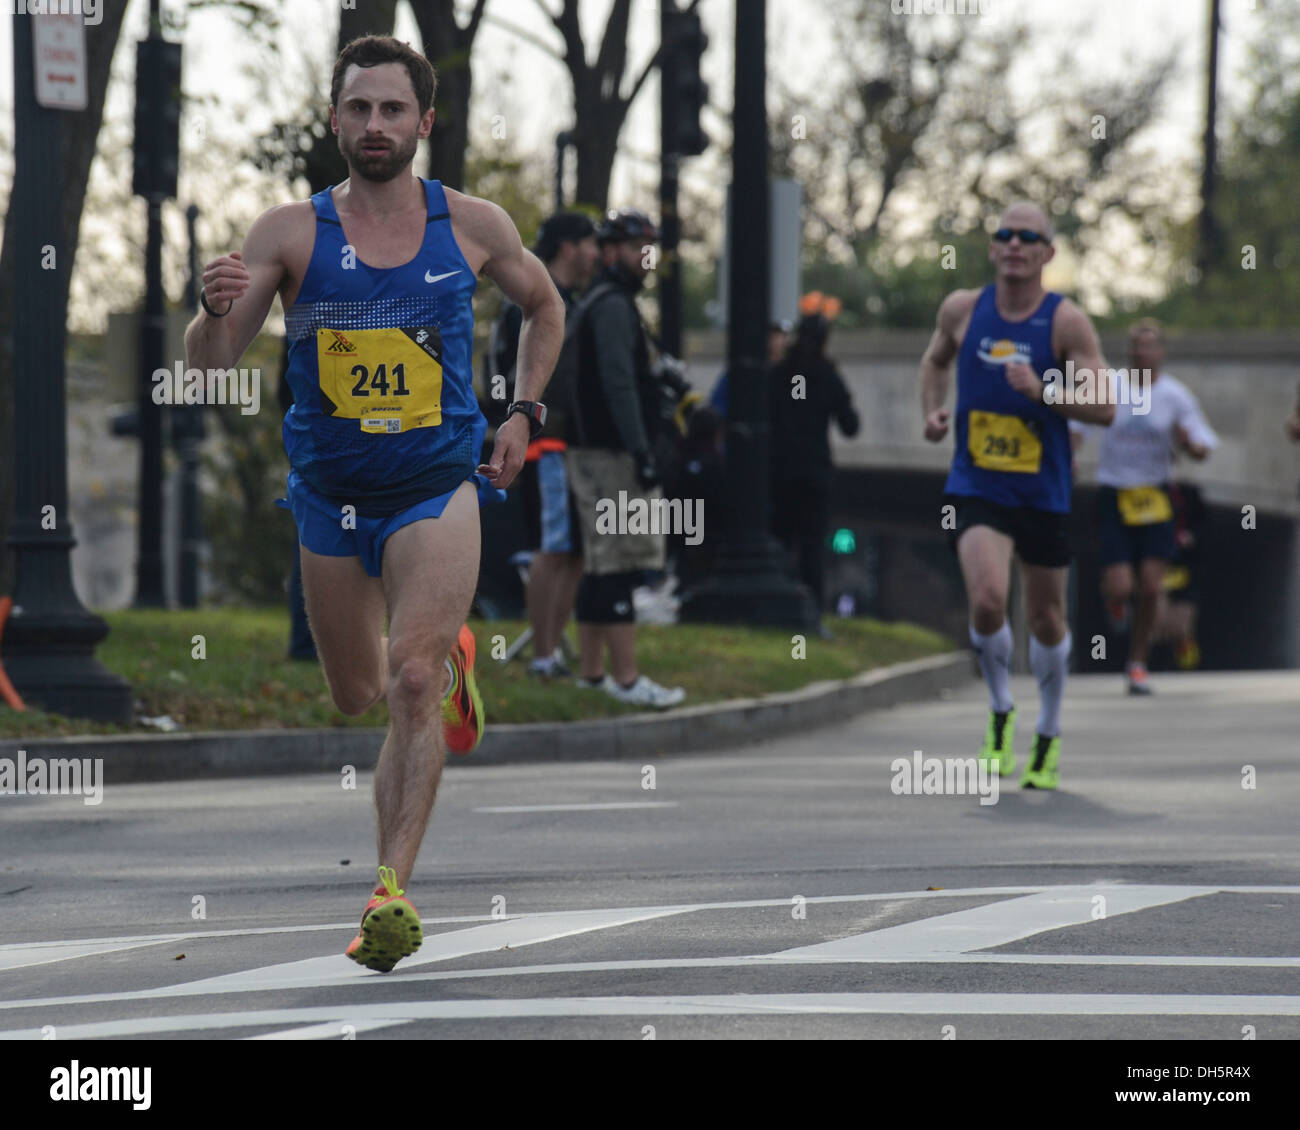 Runner Jeff Savage participates in the Thirty-eighth Annual Marine Corps Marathon, Oct. 27, 2013. Known as 'The People's Marathon,' the 26.2 mile race, rated the 3rd largest marathon in the United States in 2012, drew 30,000 participants. - Stock Image